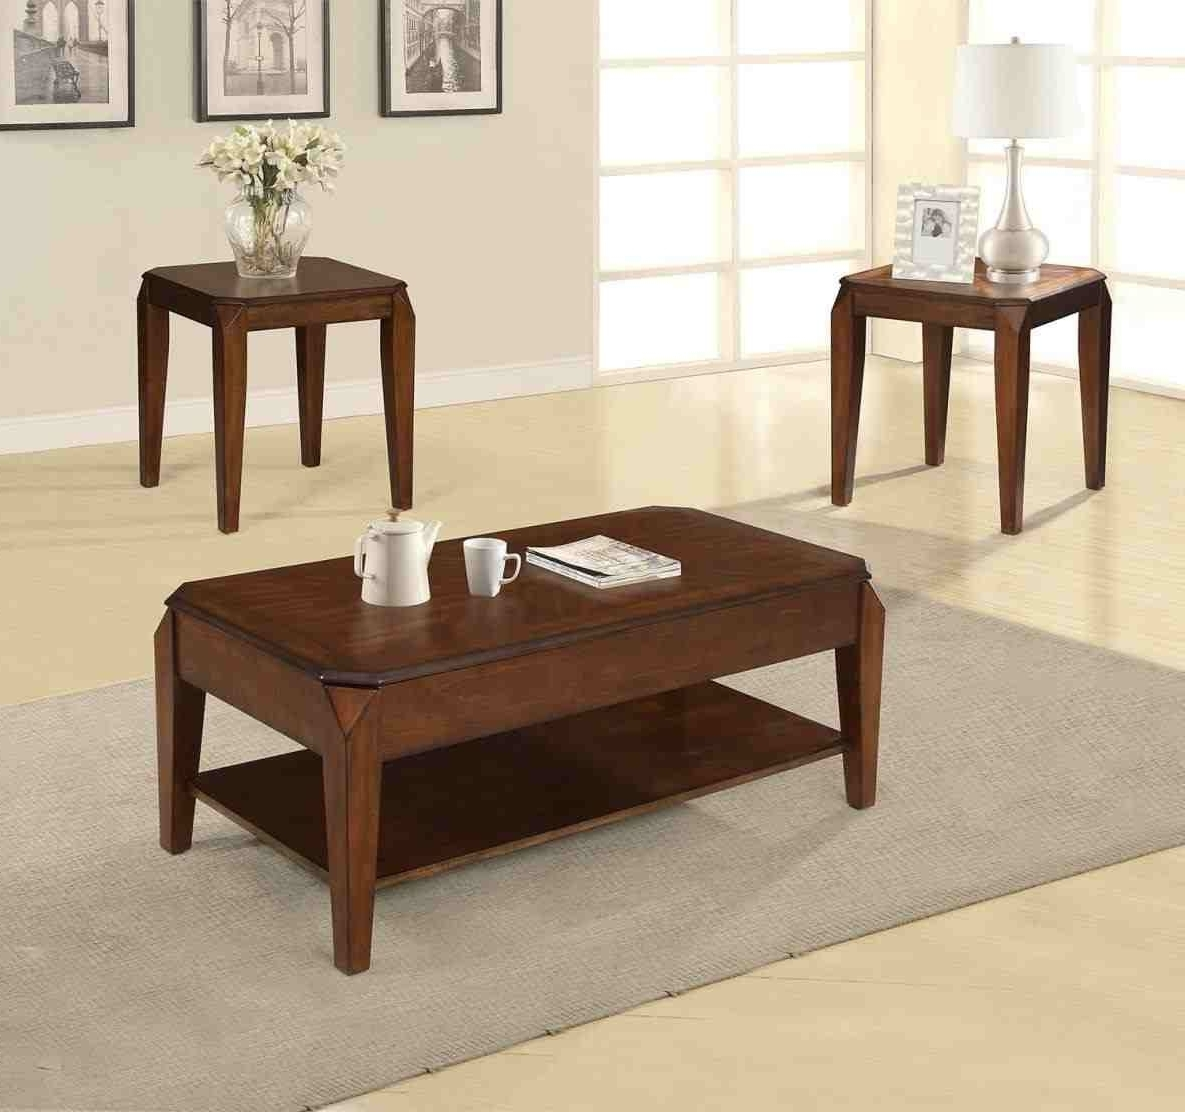 Widely Used Swell Round Coffee Tables In Duntara Coffee Table With Lift Top – Swell Round Coffee Table (View 3 of 20)